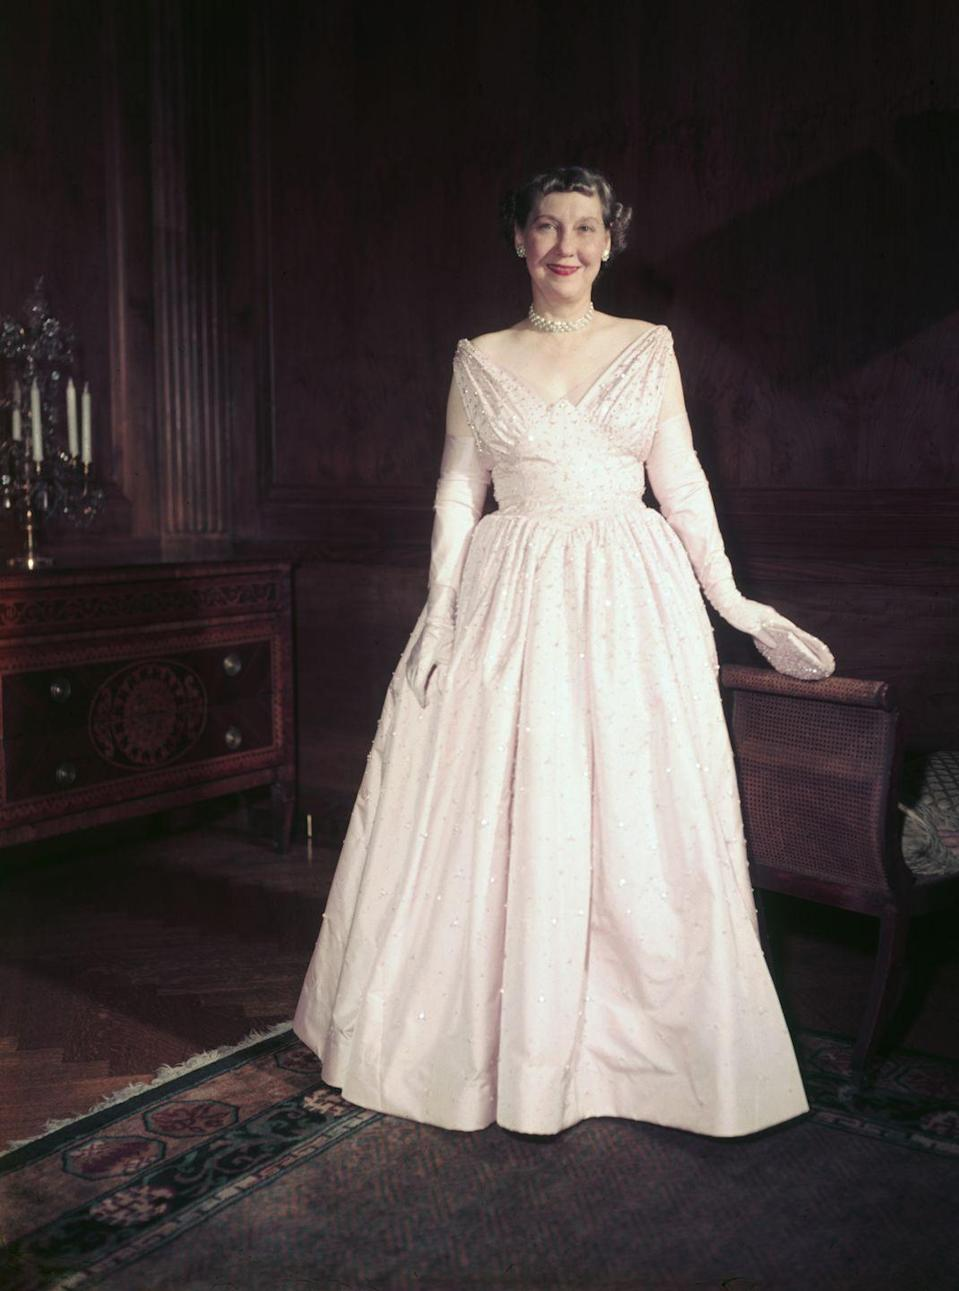 "<p>Mamie Doud Eisenhower wore this <a href=""https://style.time.com/2013/02/18/our-fair-ladies-the-14-most-fashionable-first-ladies/slide/mamie-eisenhower/"" rel=""nofollow noopener"" target=""_blank"" data-ylk=""slk:bubblegum pink shade"" class=""link rapid-noclick-resp"">bubblegum pink shade</a> so much during her time as first lady. It eventually became known as ""Mamie pink"" and was donned by most women in the '50s and early '60s.</p>"